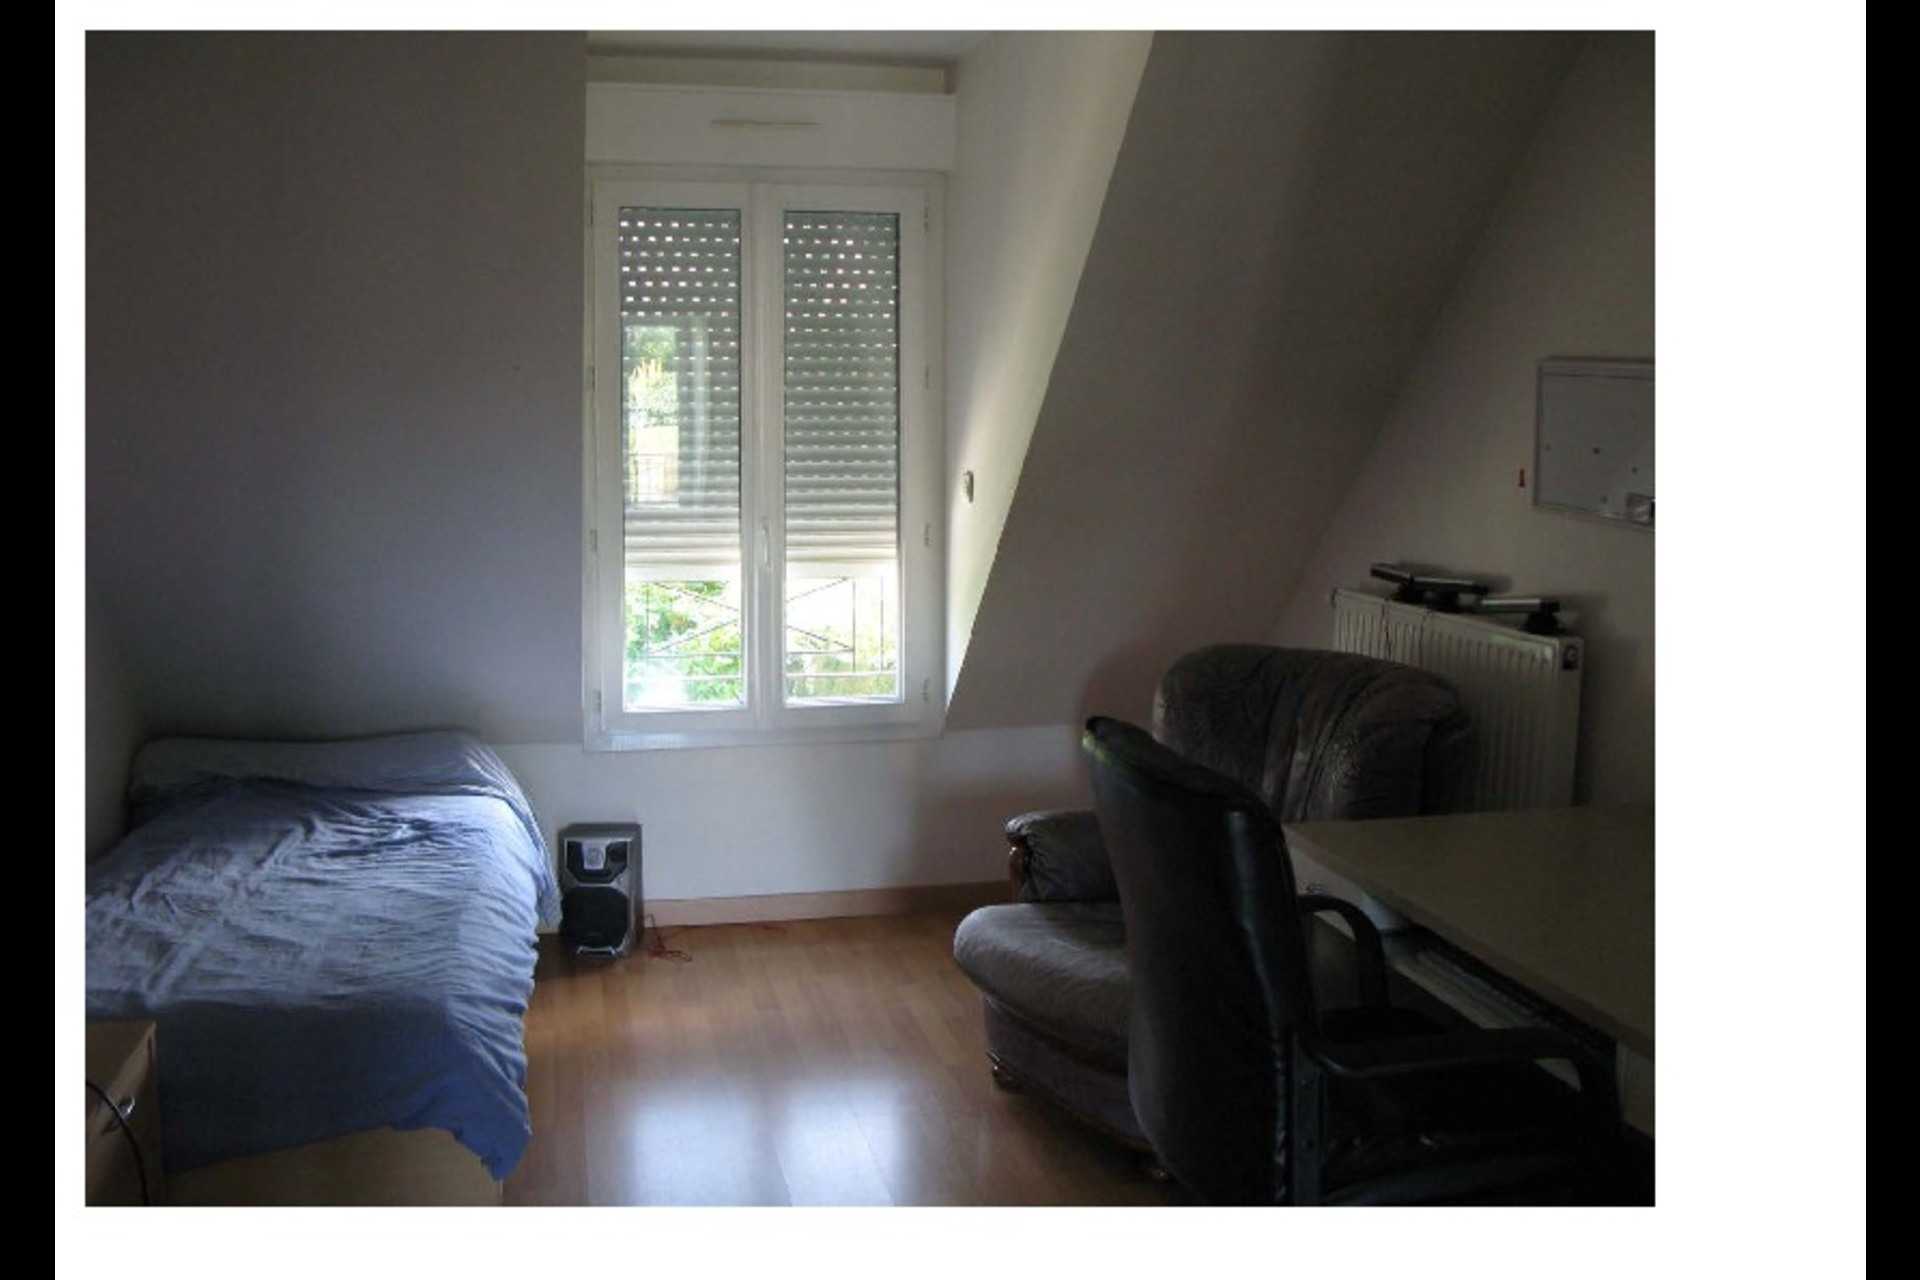 image 9 - House For rent feucherolles - 9 rooms